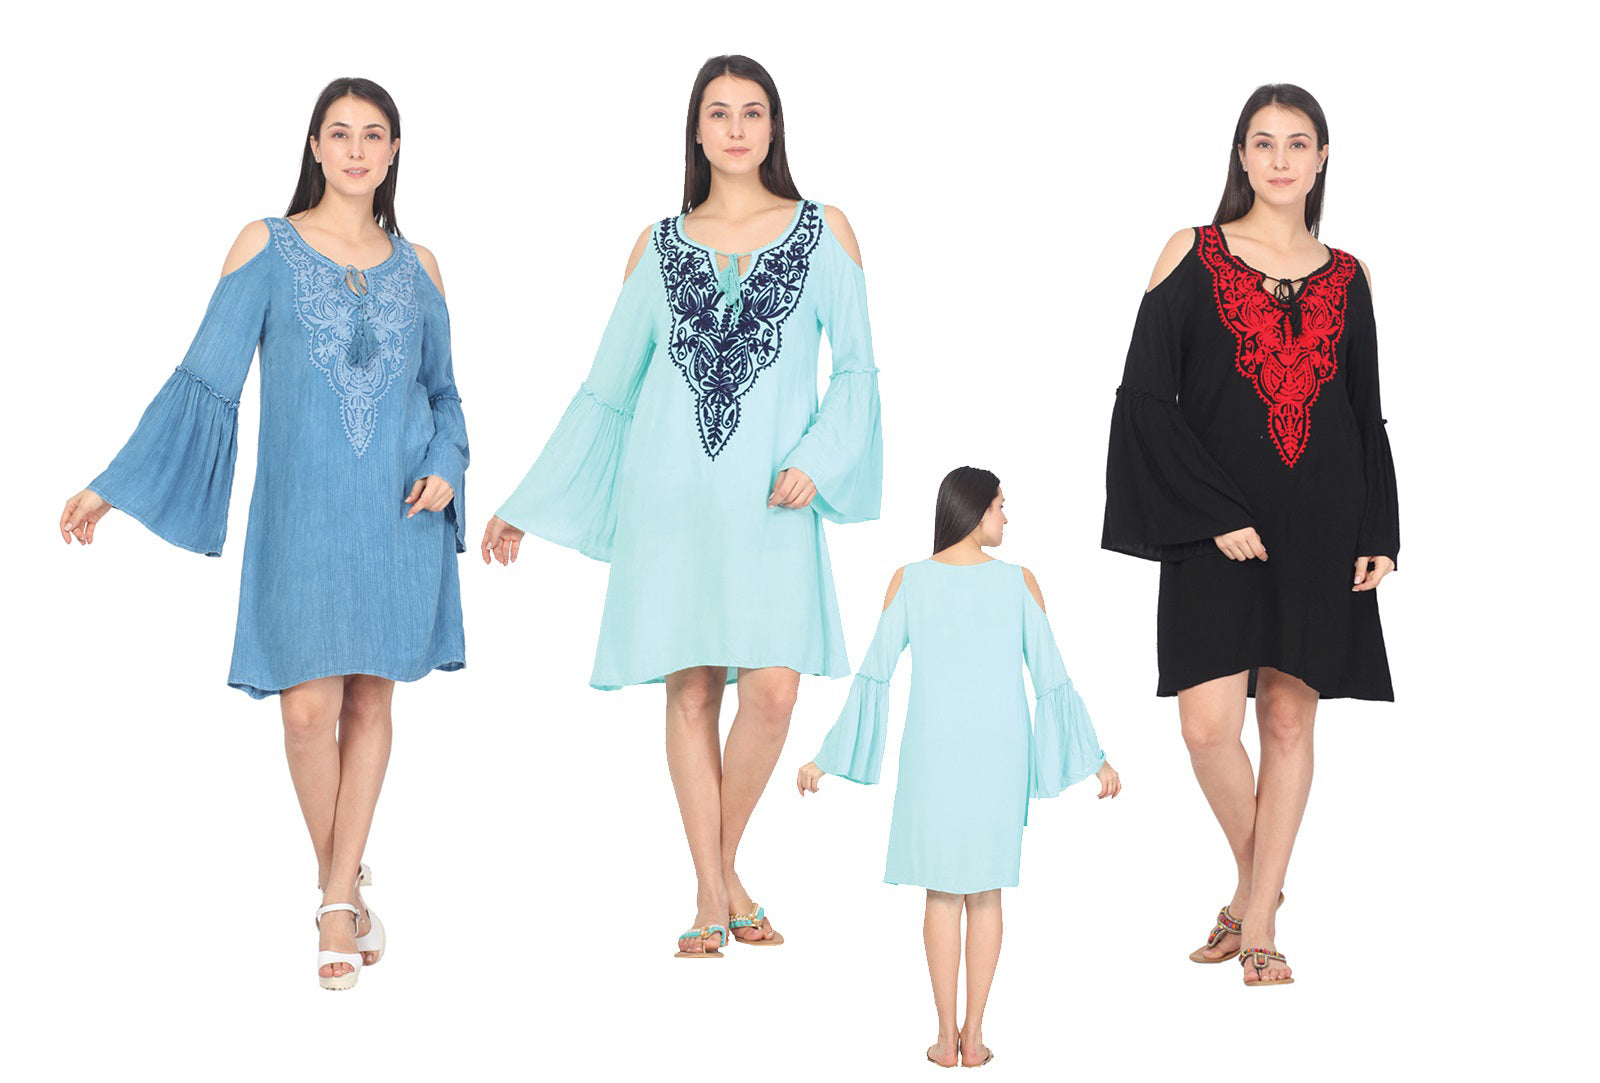 Wholesale Clothing Dresses Rayon Dress-3Q Sleeve Cold Shoulder with Heavy Embd.36/Case S-XL(WT,BK,RBL) NWG25